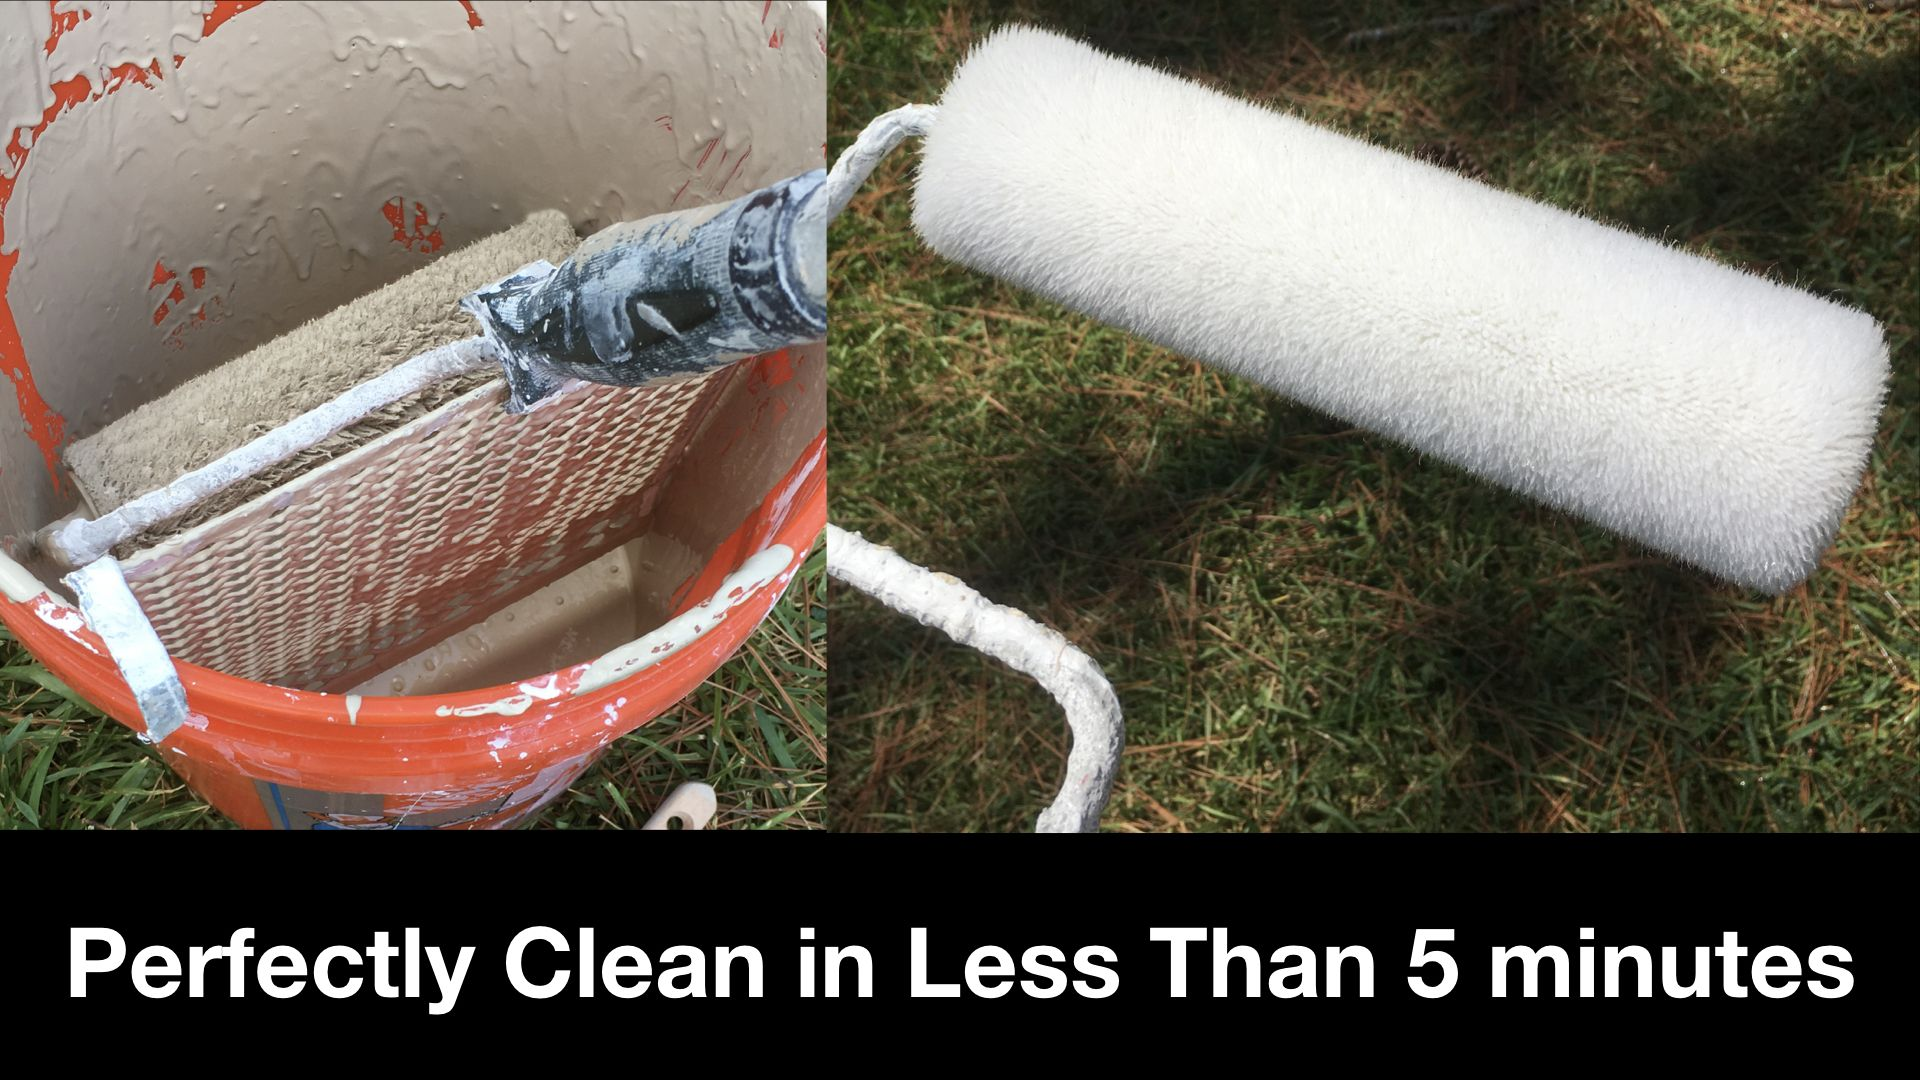 How To Clean A Paint Roller In Less Than 5 Minutes The Quick Way To Clean A Paint Roller Www Daileywoodworks Com Paint Roller Cleaning Roller